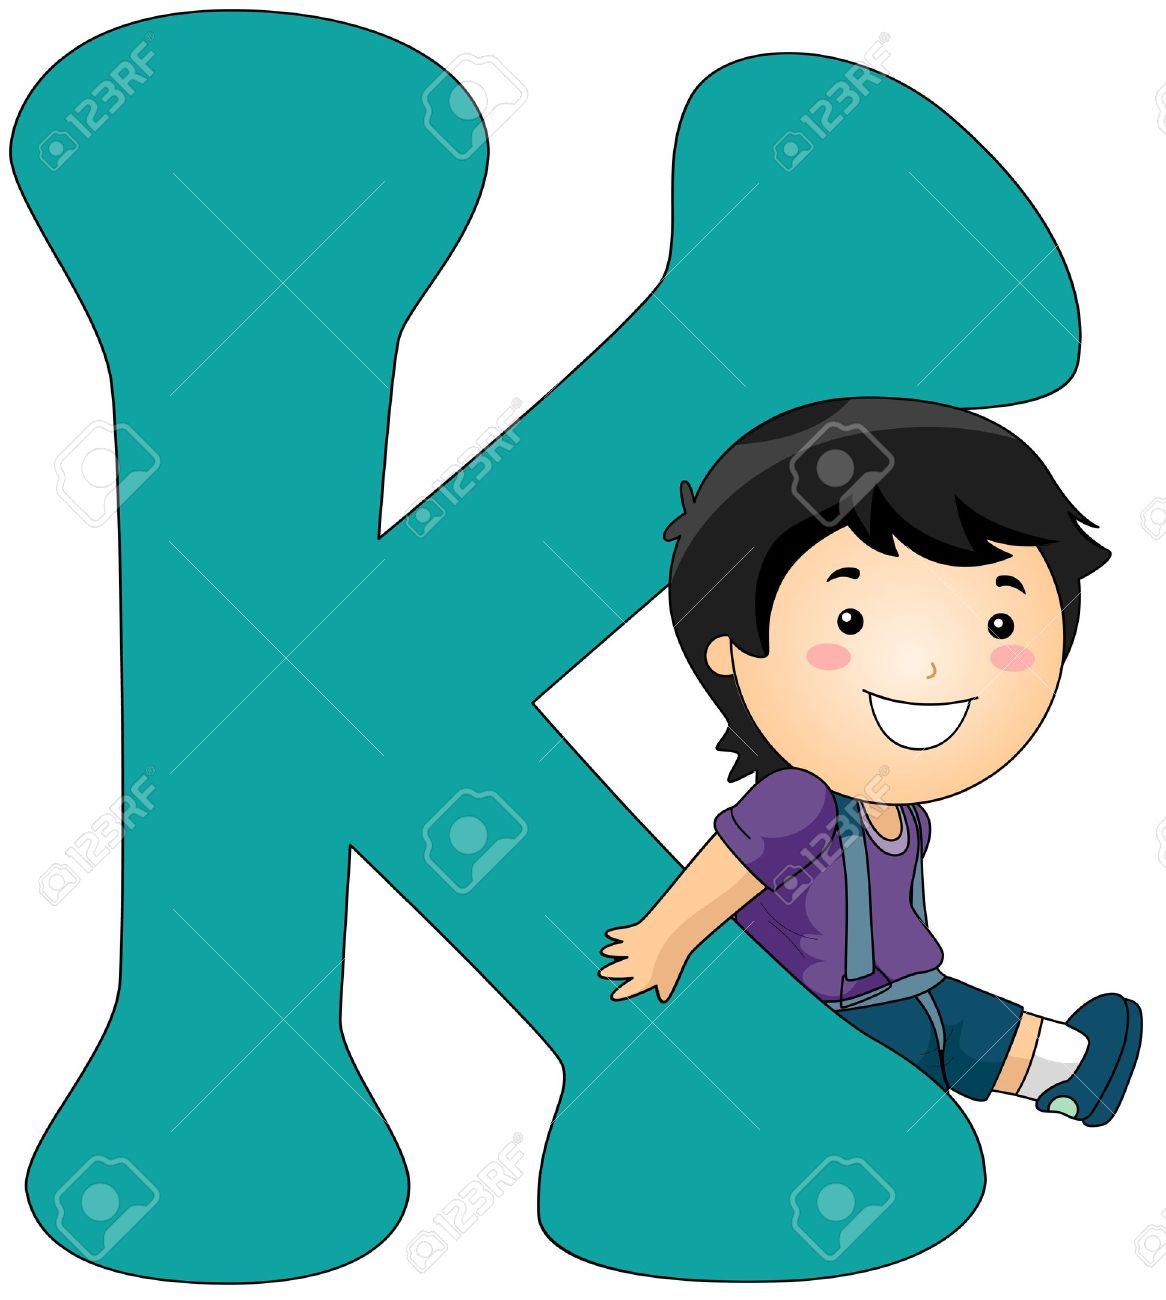 Leaning Against a Letter K .